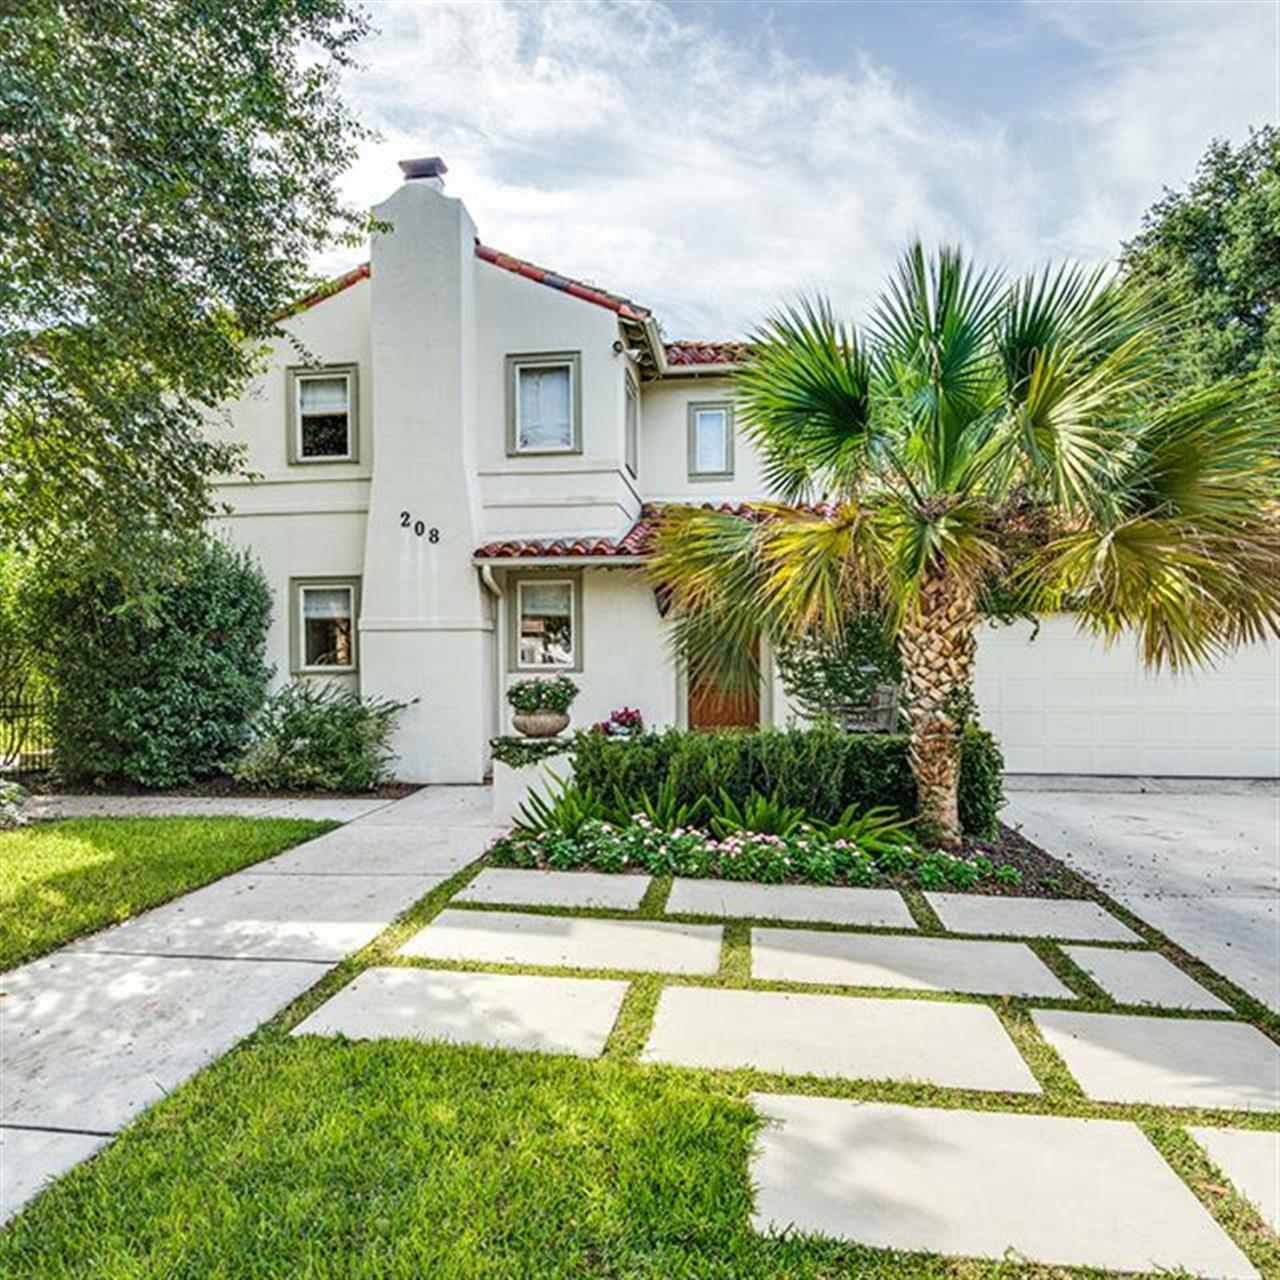 Luxury of the Day: 208 Morningside Drive in #TerrellHills listed by @susanne_marco_realtor. Entertain in style at this spacious Mediterranean-style home featuring oversized windows and lovely hardwood floors.